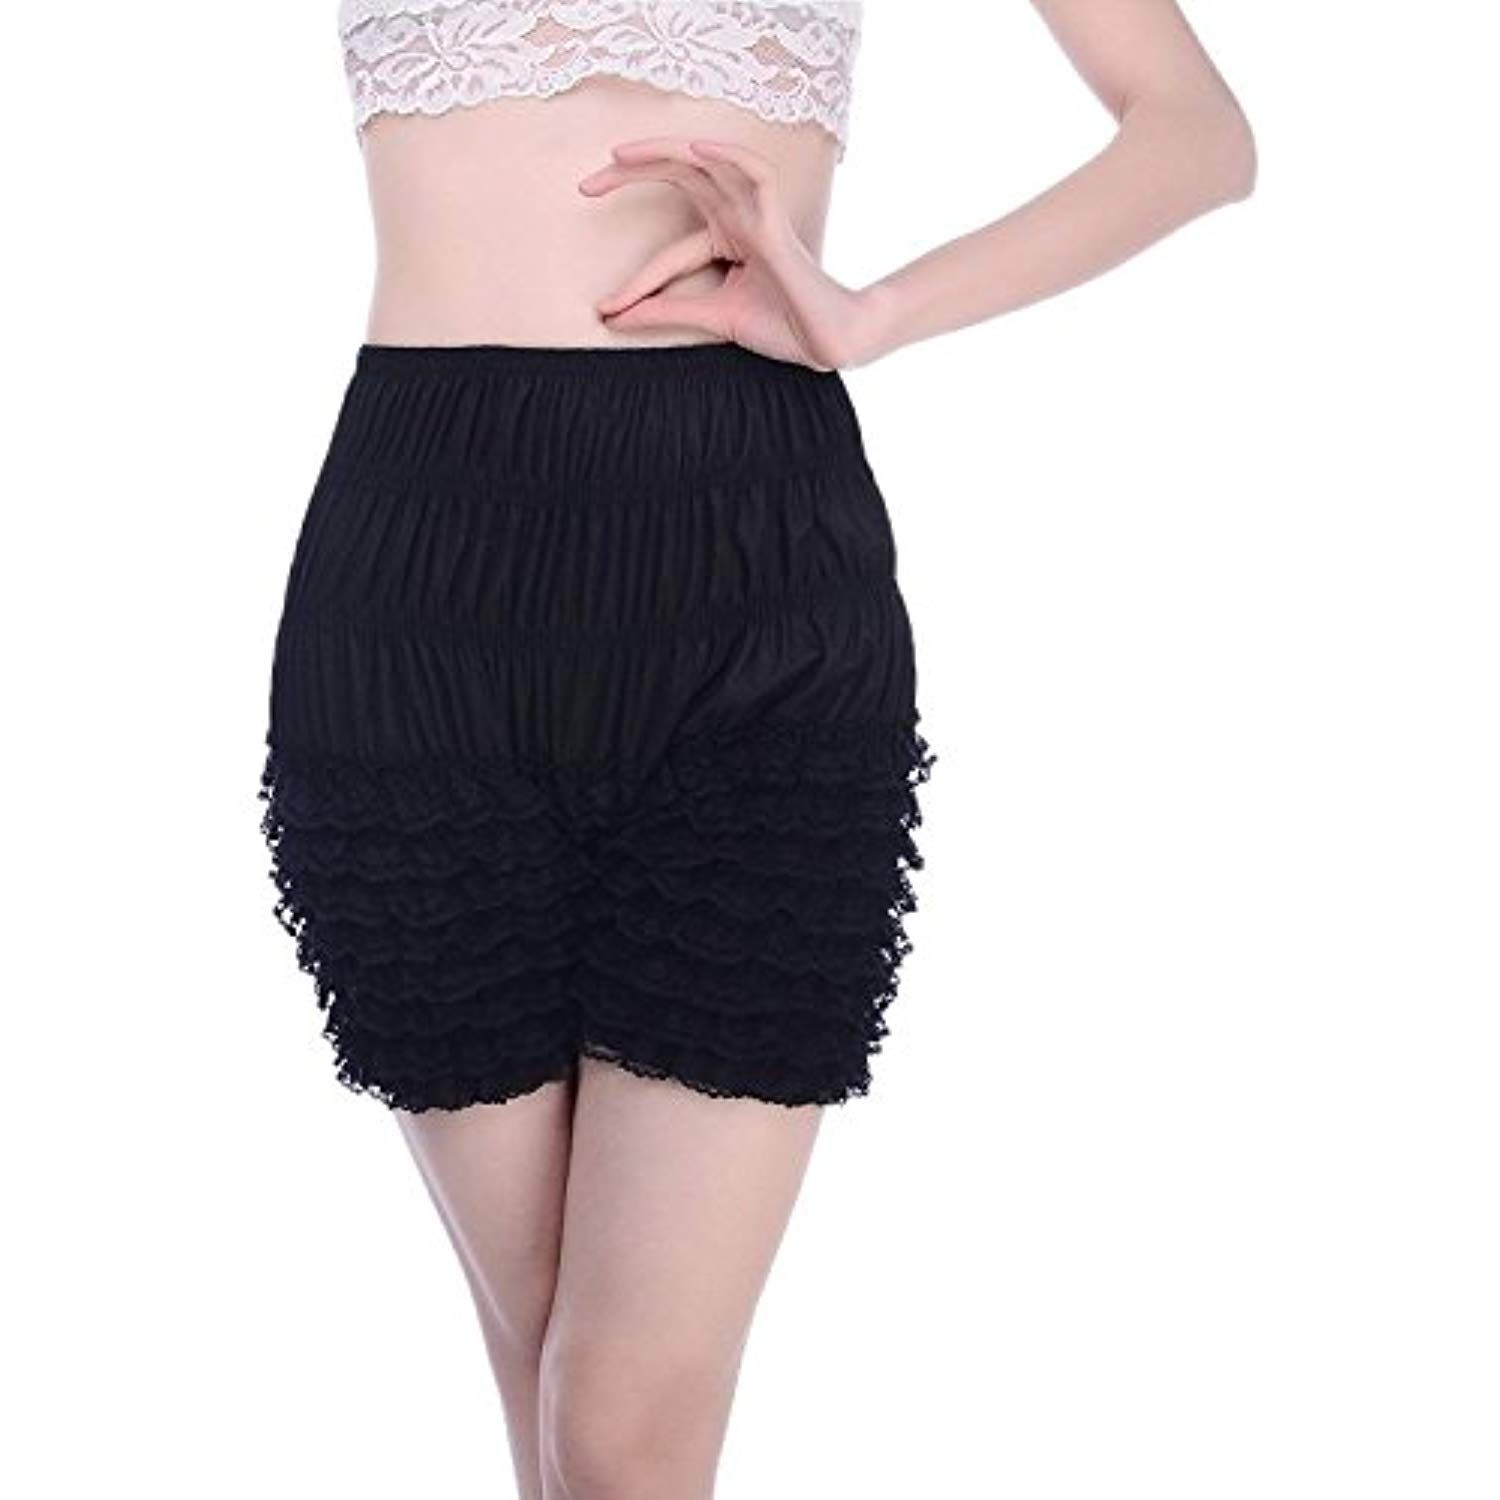 e164b613fd76 Women's Micromesh Lace Ruffle Tanga Shorts Sexy Ruffled Lace Panties Sissy  Pettipant Dance Bloomers Frilly Shorts ** More info could be found at the  image ...